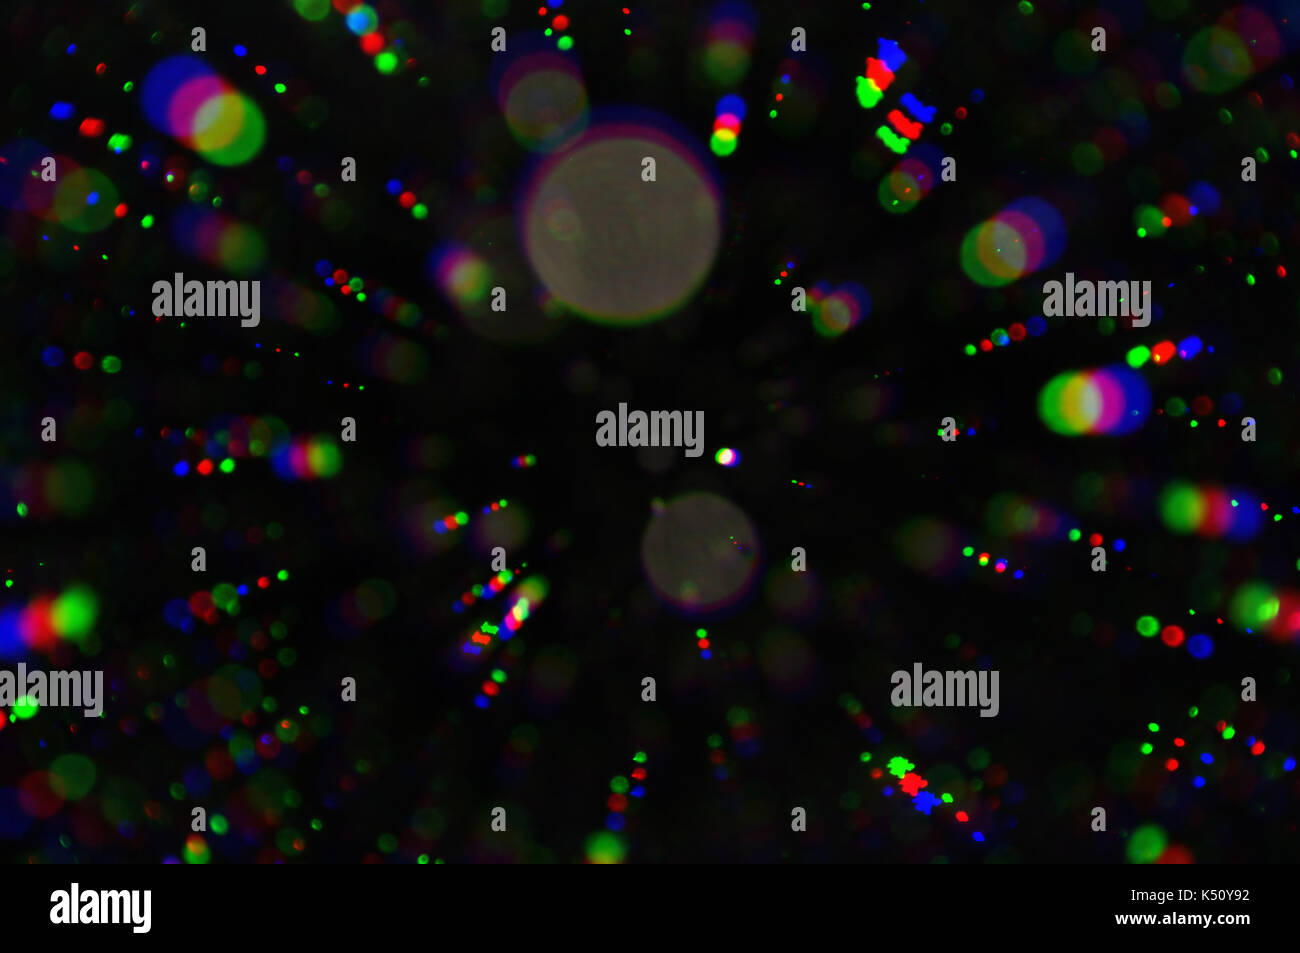 Flashing lights colorful circles blur. Abstract background. Stock Photo